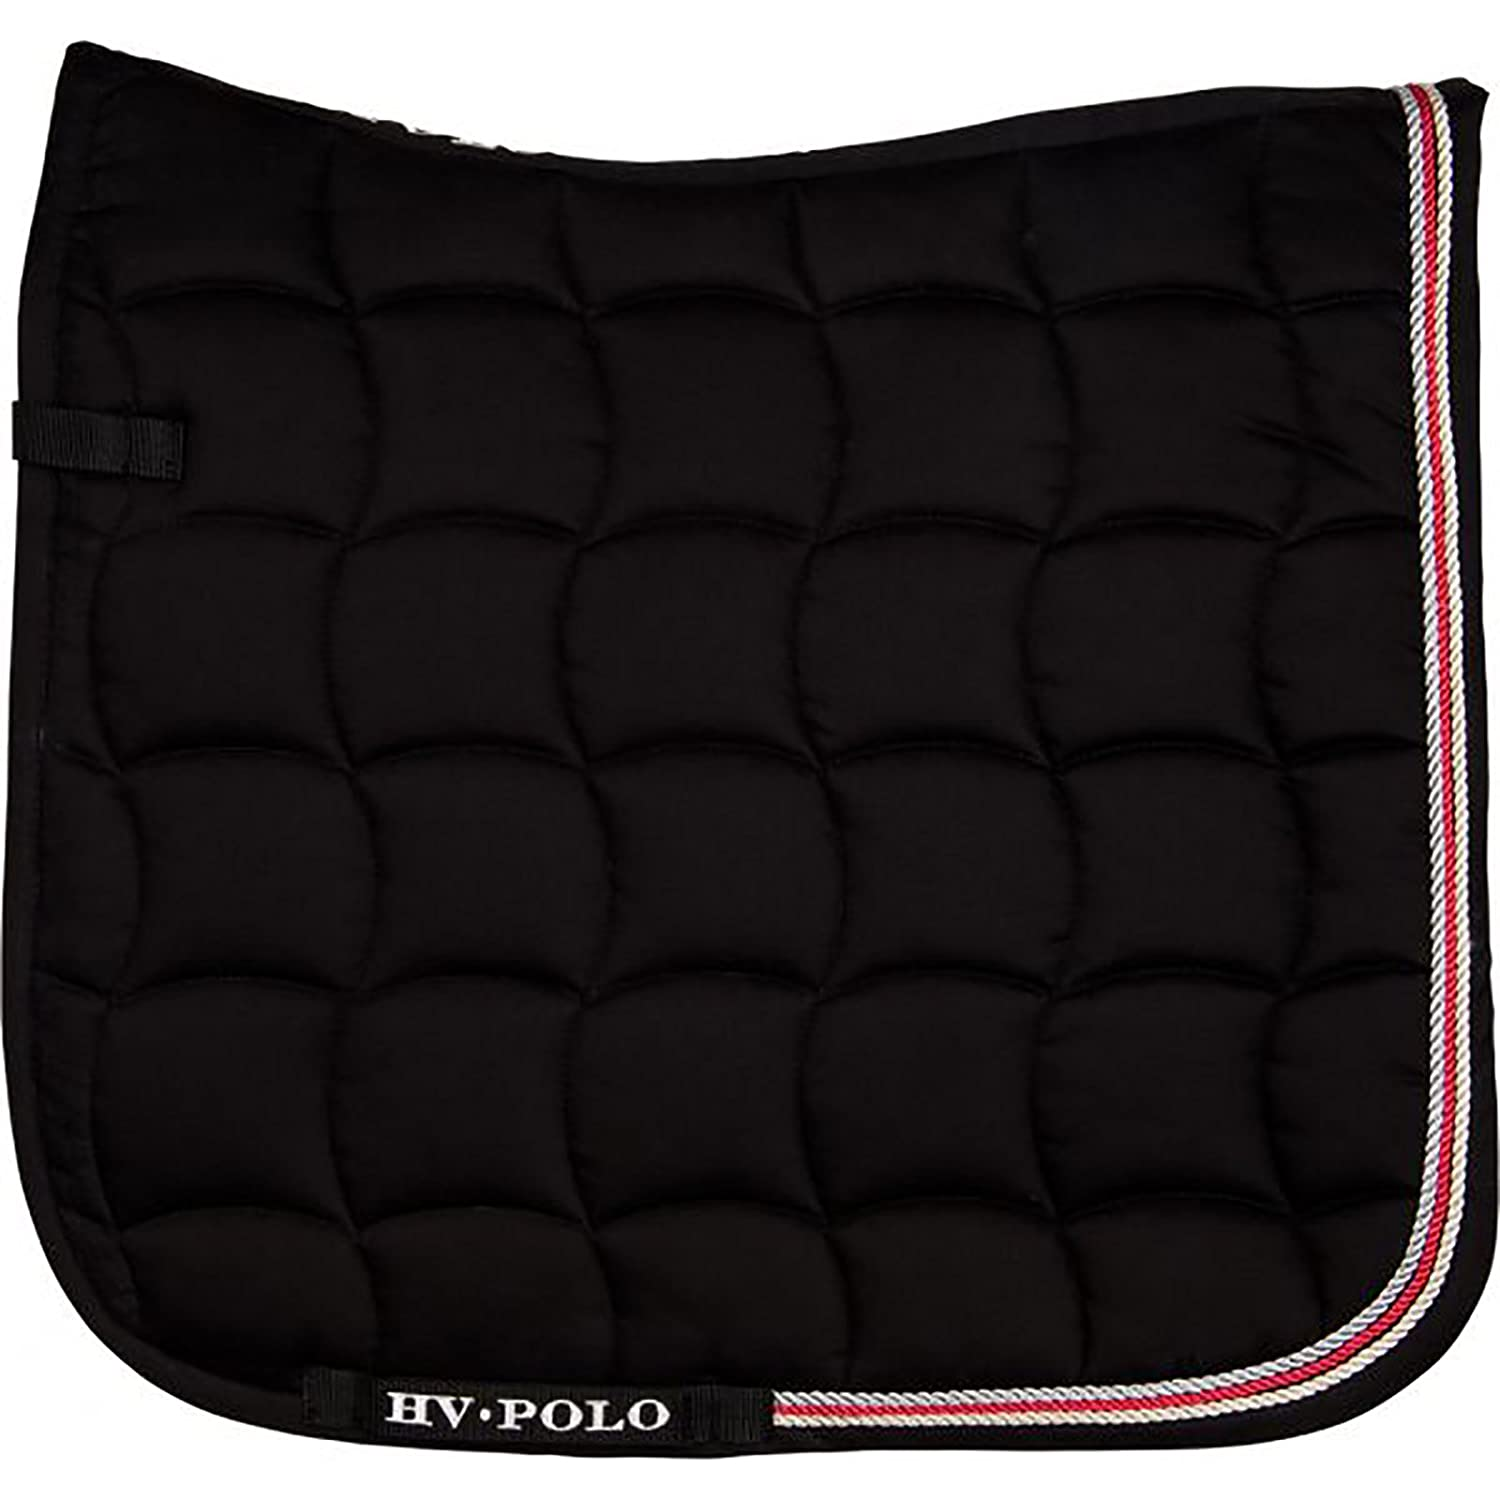 Black FullHV POLO Grover Dressage Saddle Pad